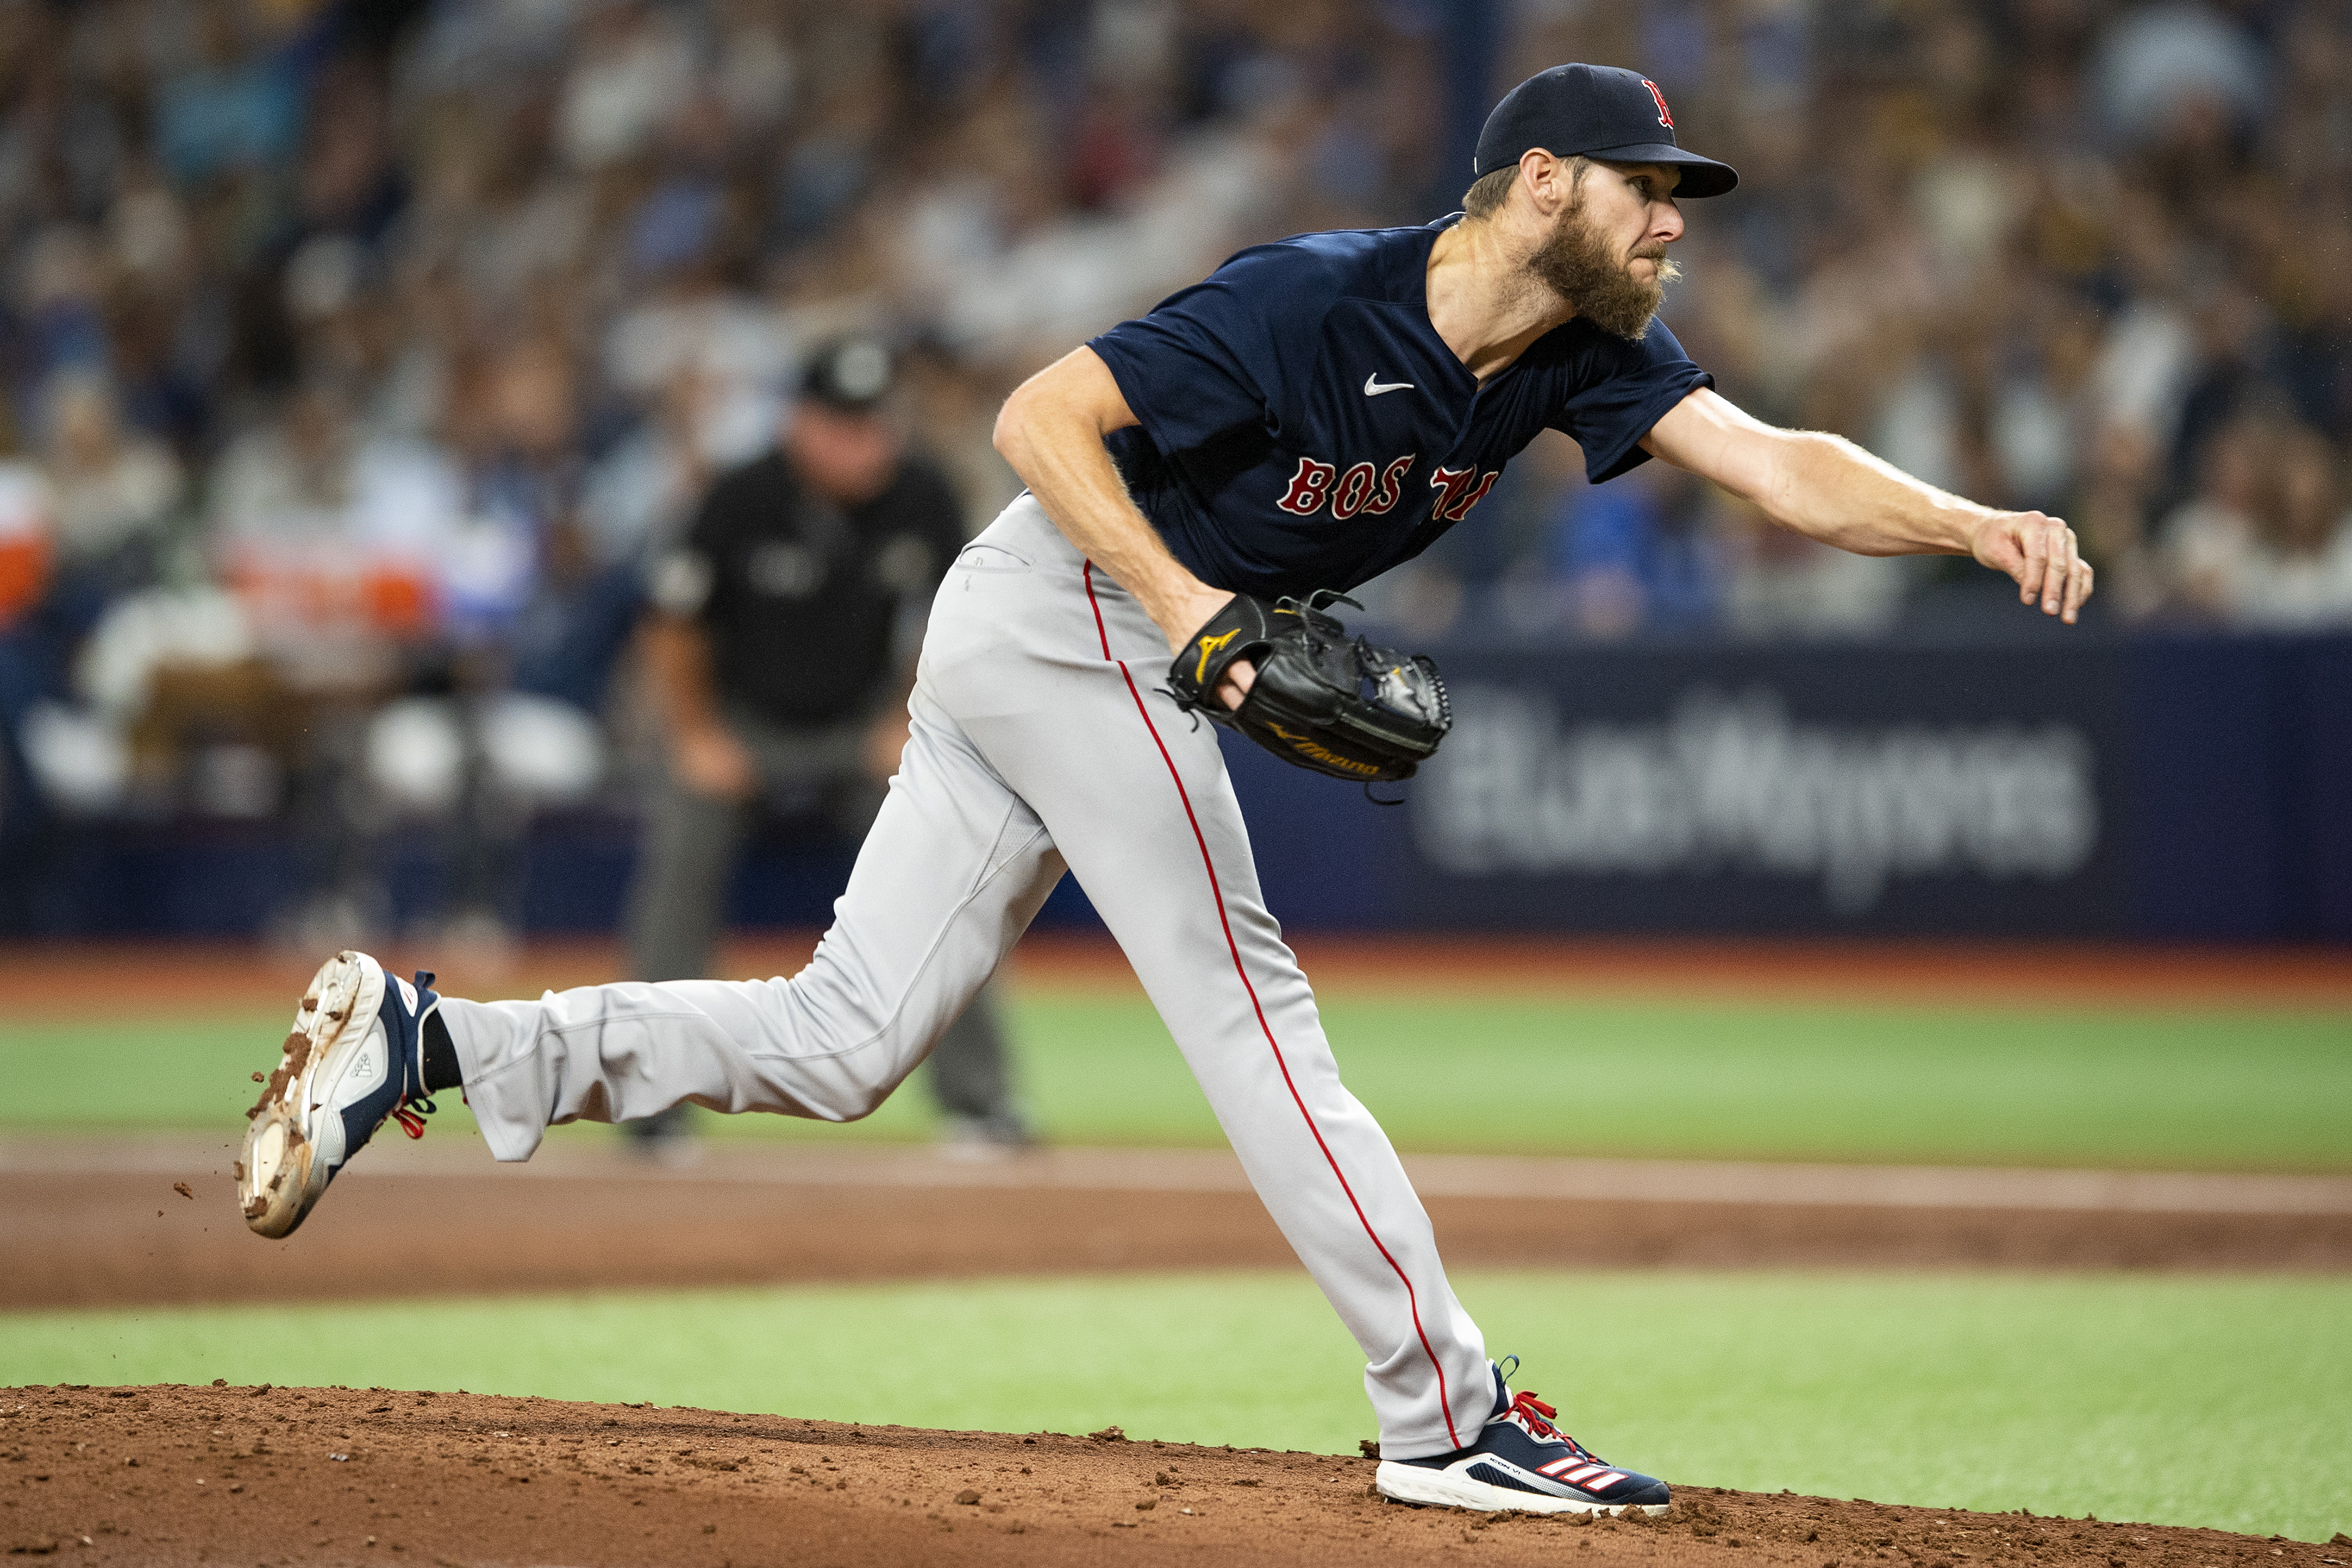 Chris Sale #41 of the Boston Red Sox delivers during the first inning of game two of the 2021 American League Division Series against the Tampa Bay Rays at Tropicana Field on October 8, 2021 in St Petersburg, Florida.